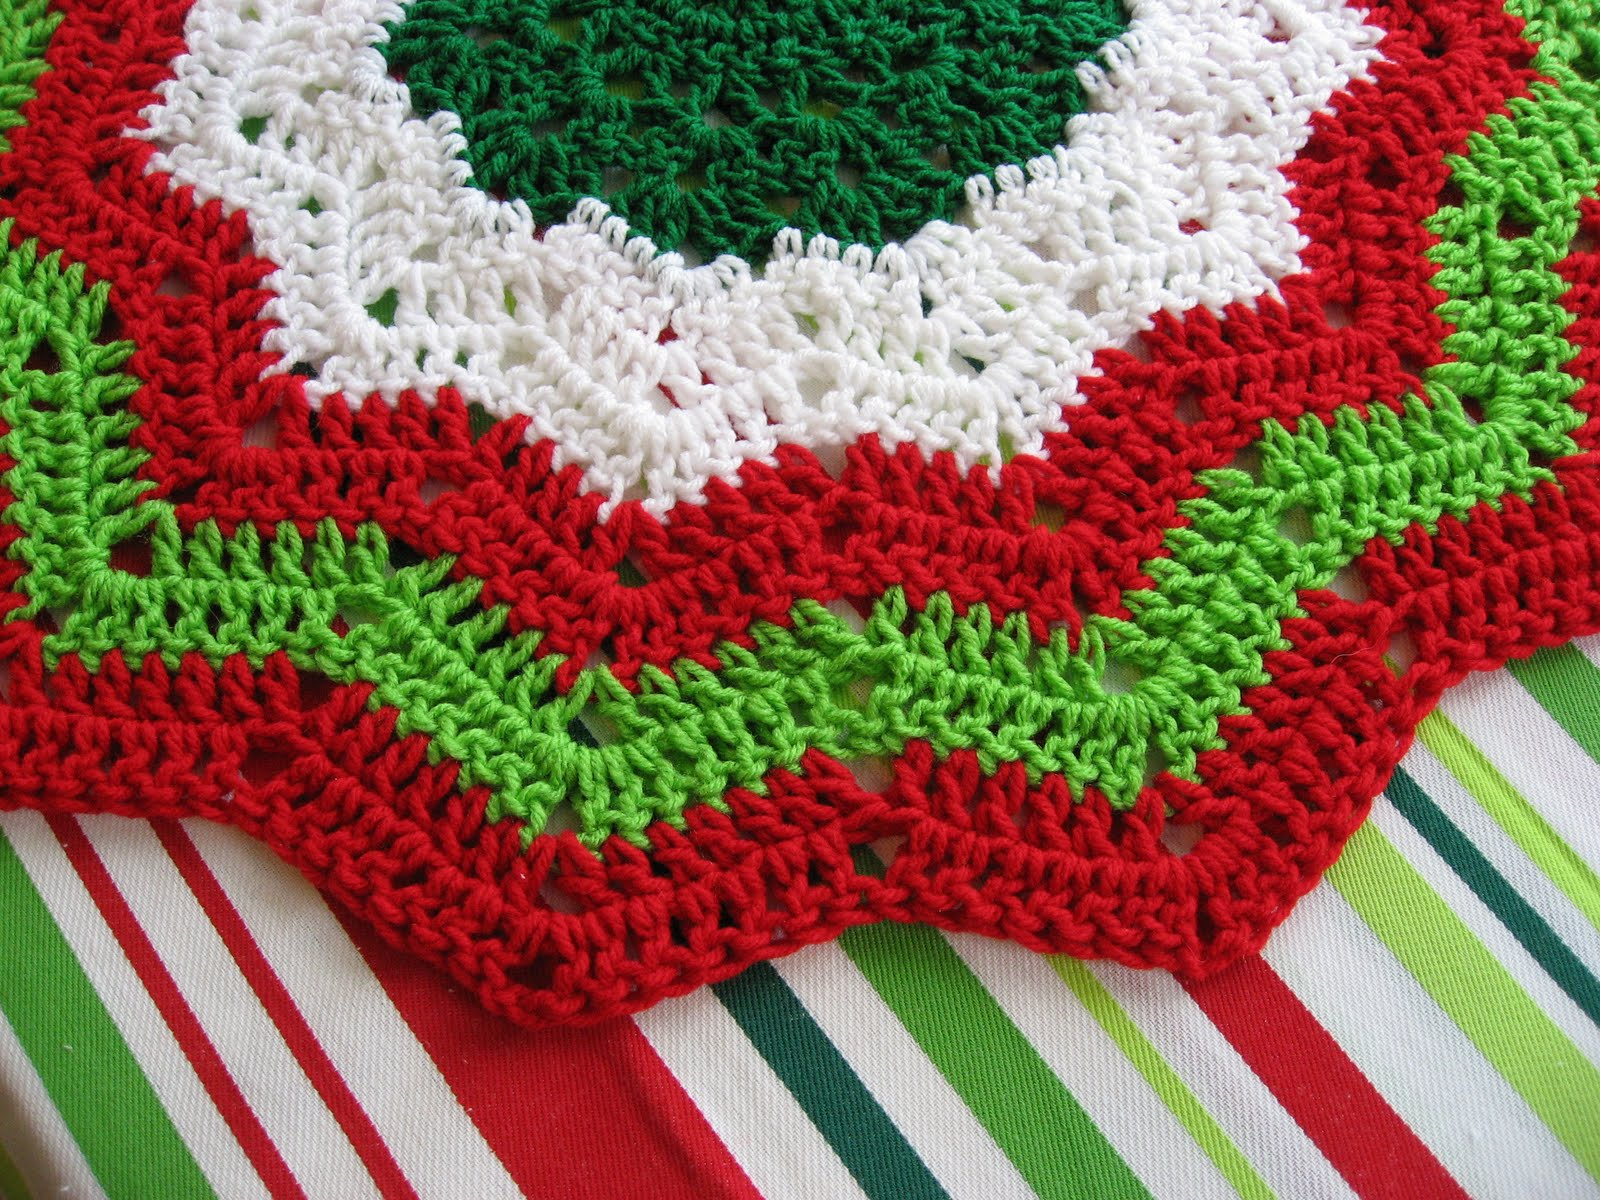 Christmas Crochet Patterns : Crochet Pattern Central - Free Afghan Crochet Pattern Link Directory